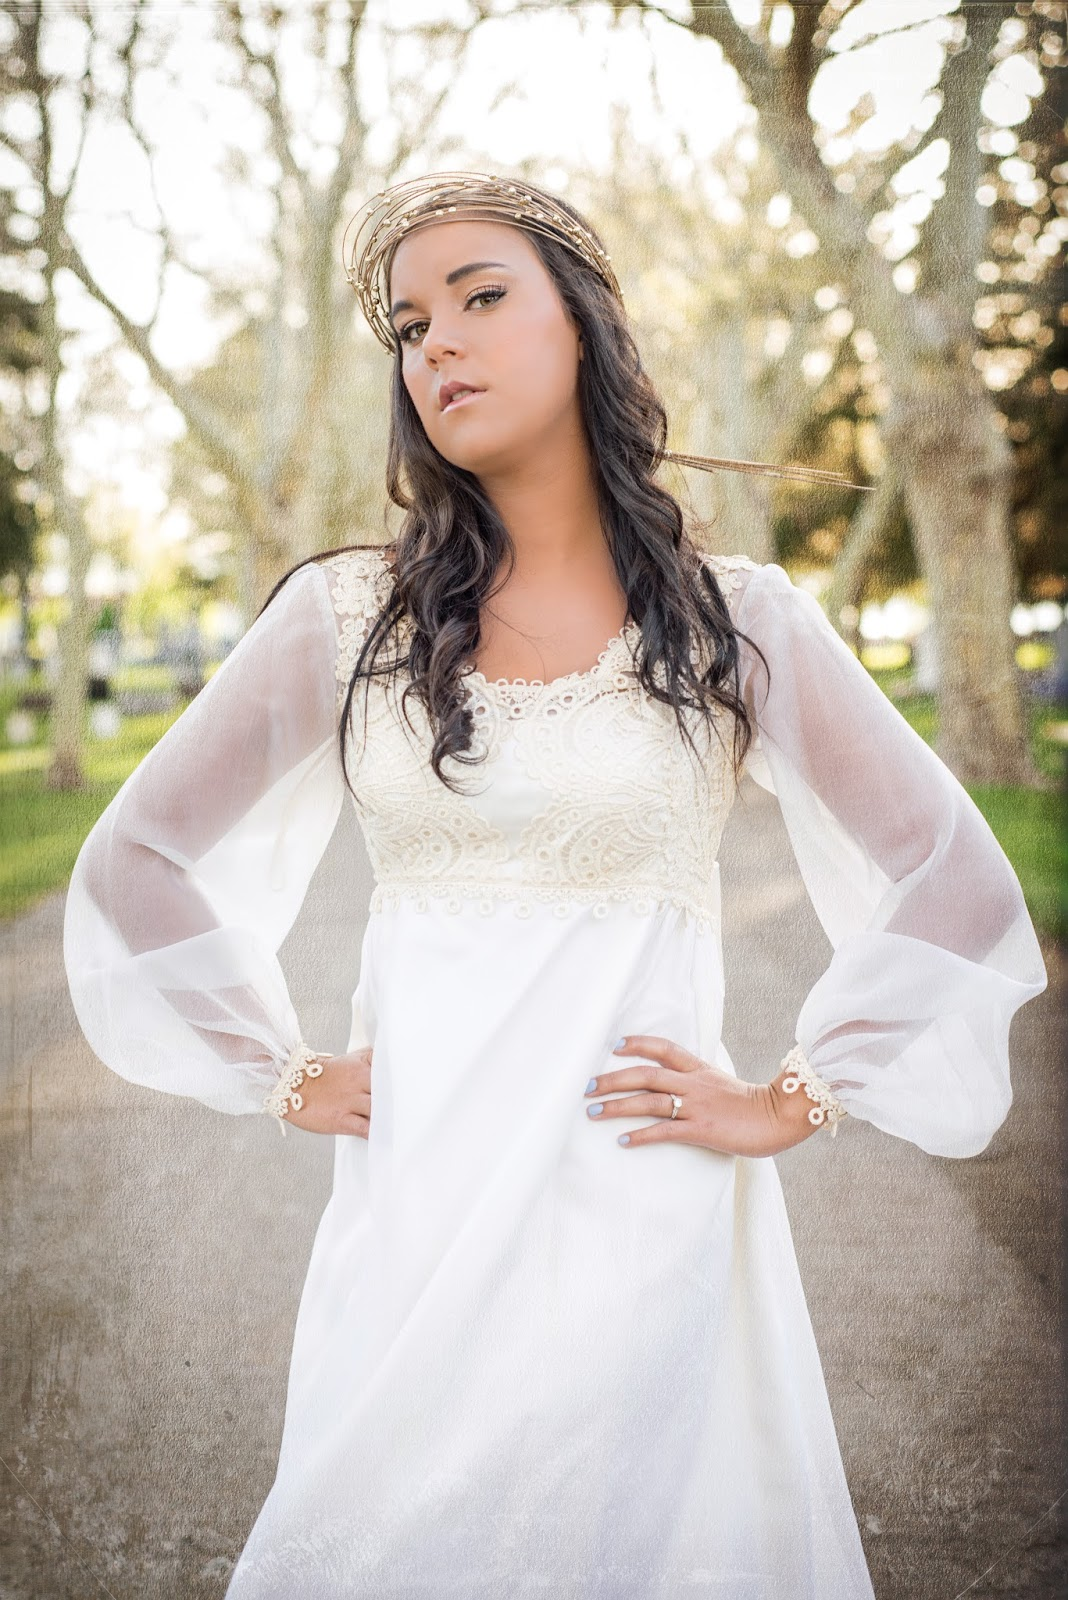 Bridal Photographer Utah